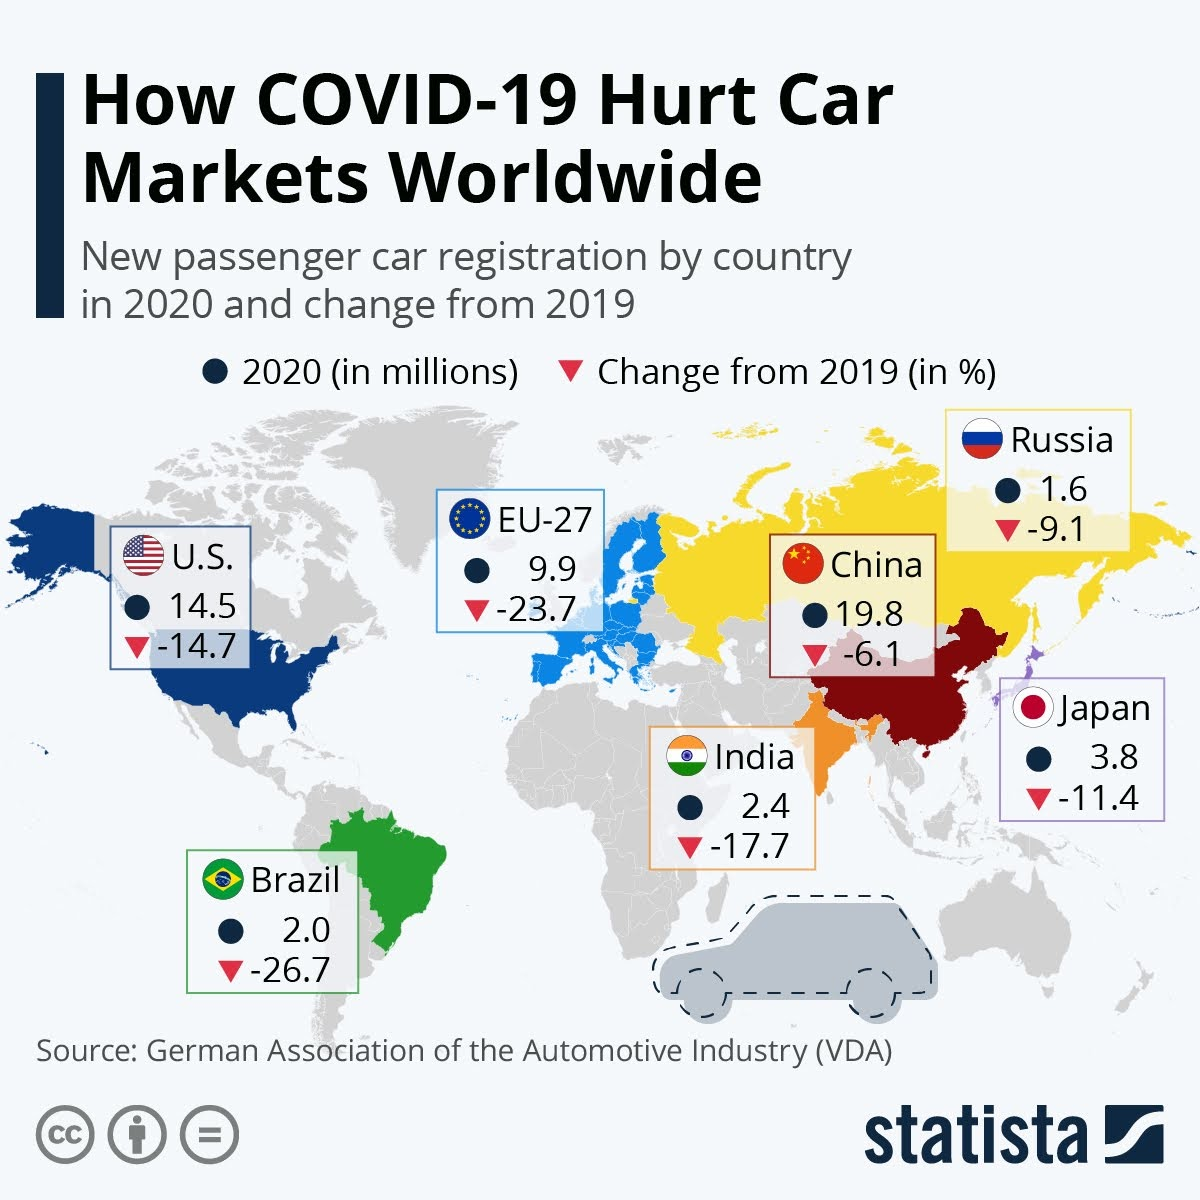 how-covid-19-hurt-car-markets-worldwide-infographic